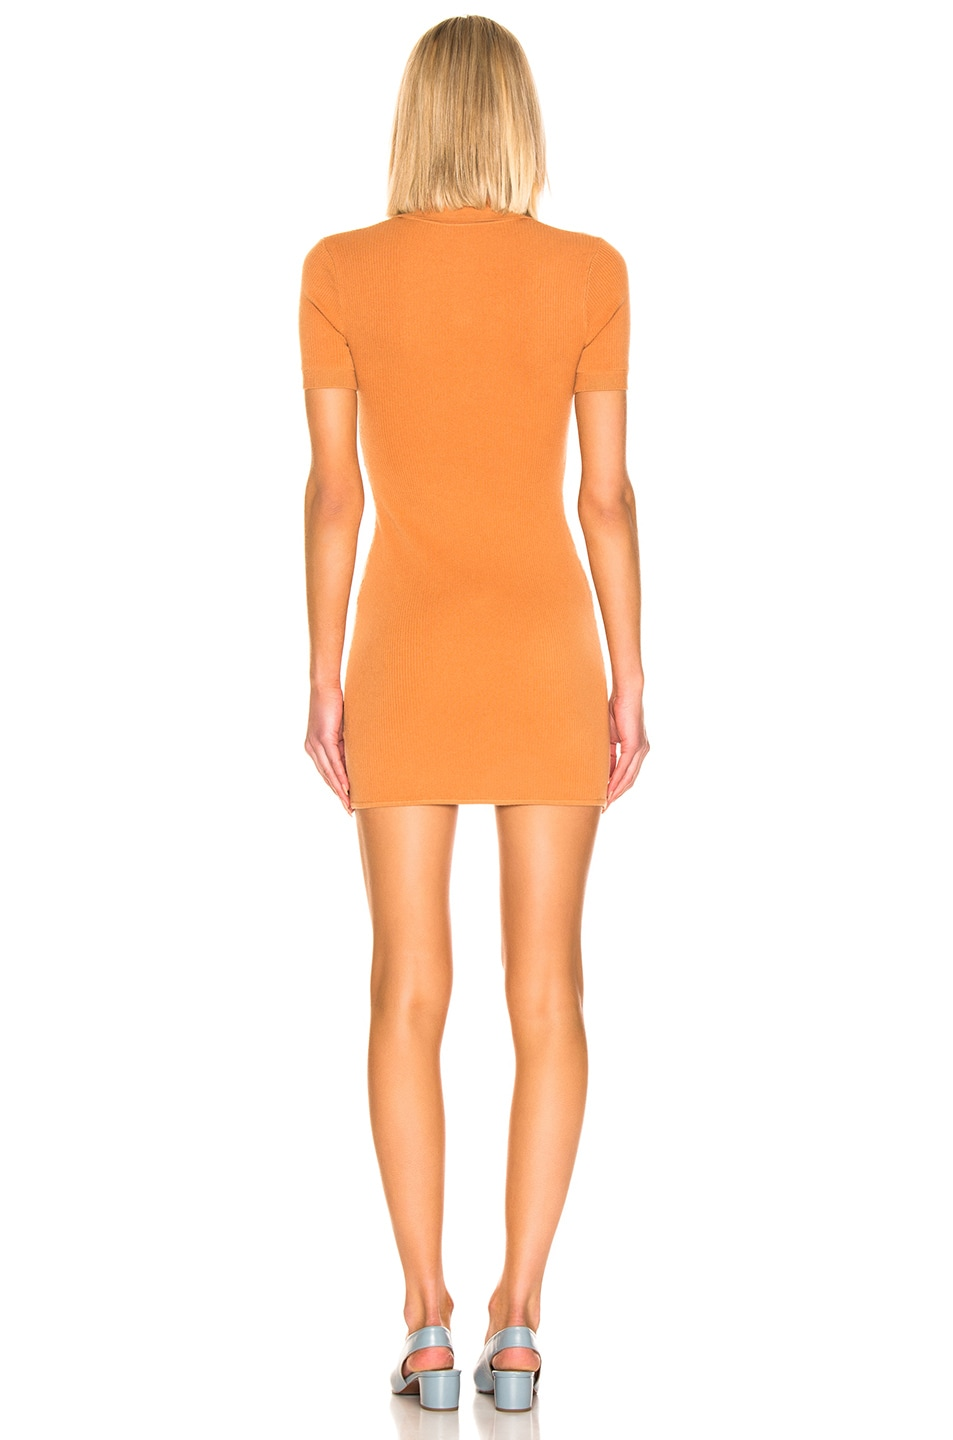 Image 3 of JoosTricot Polo Dress in Caramel Sauce